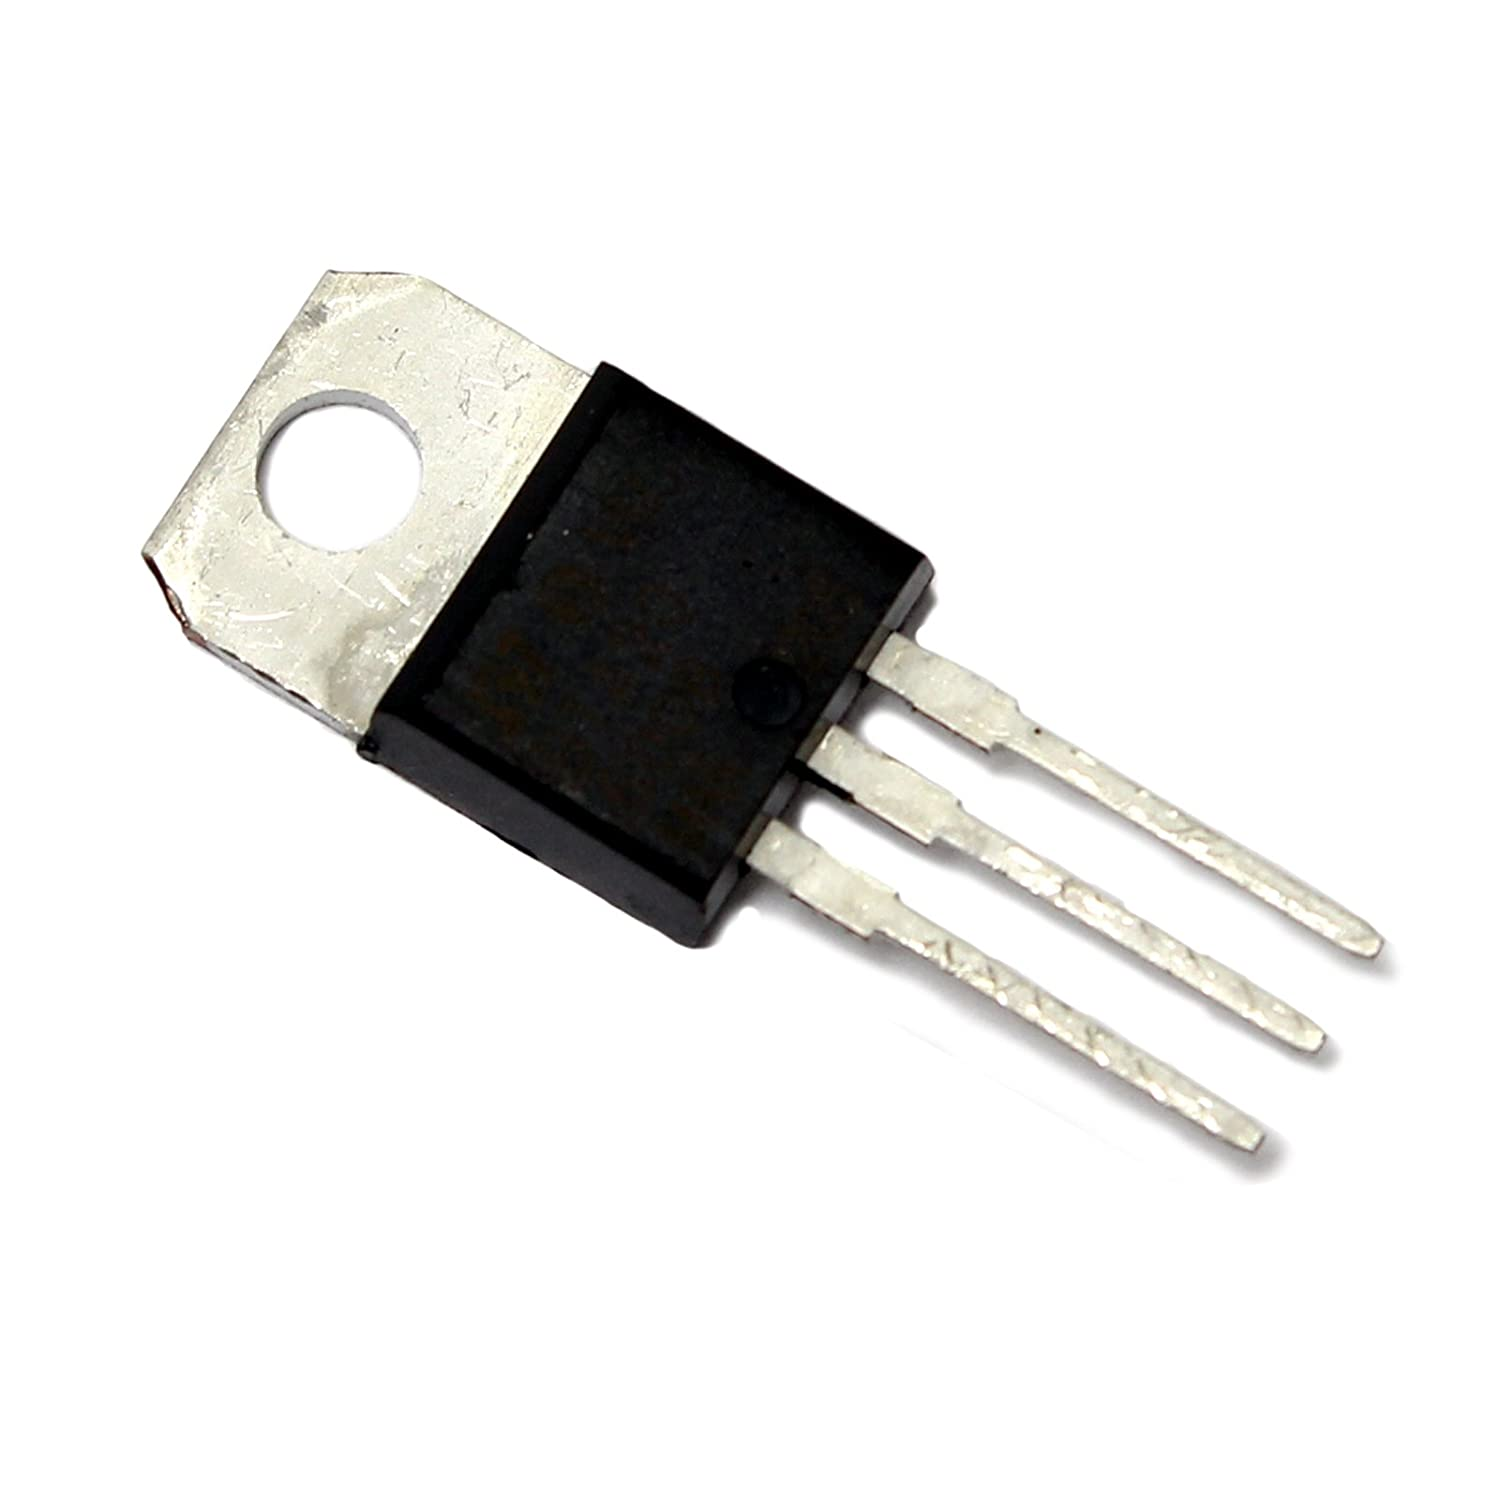 Aoyue Spare Part Bta20 600a Triac Transistor Diy Tools Heres The Other Side Of Circuit Board With New